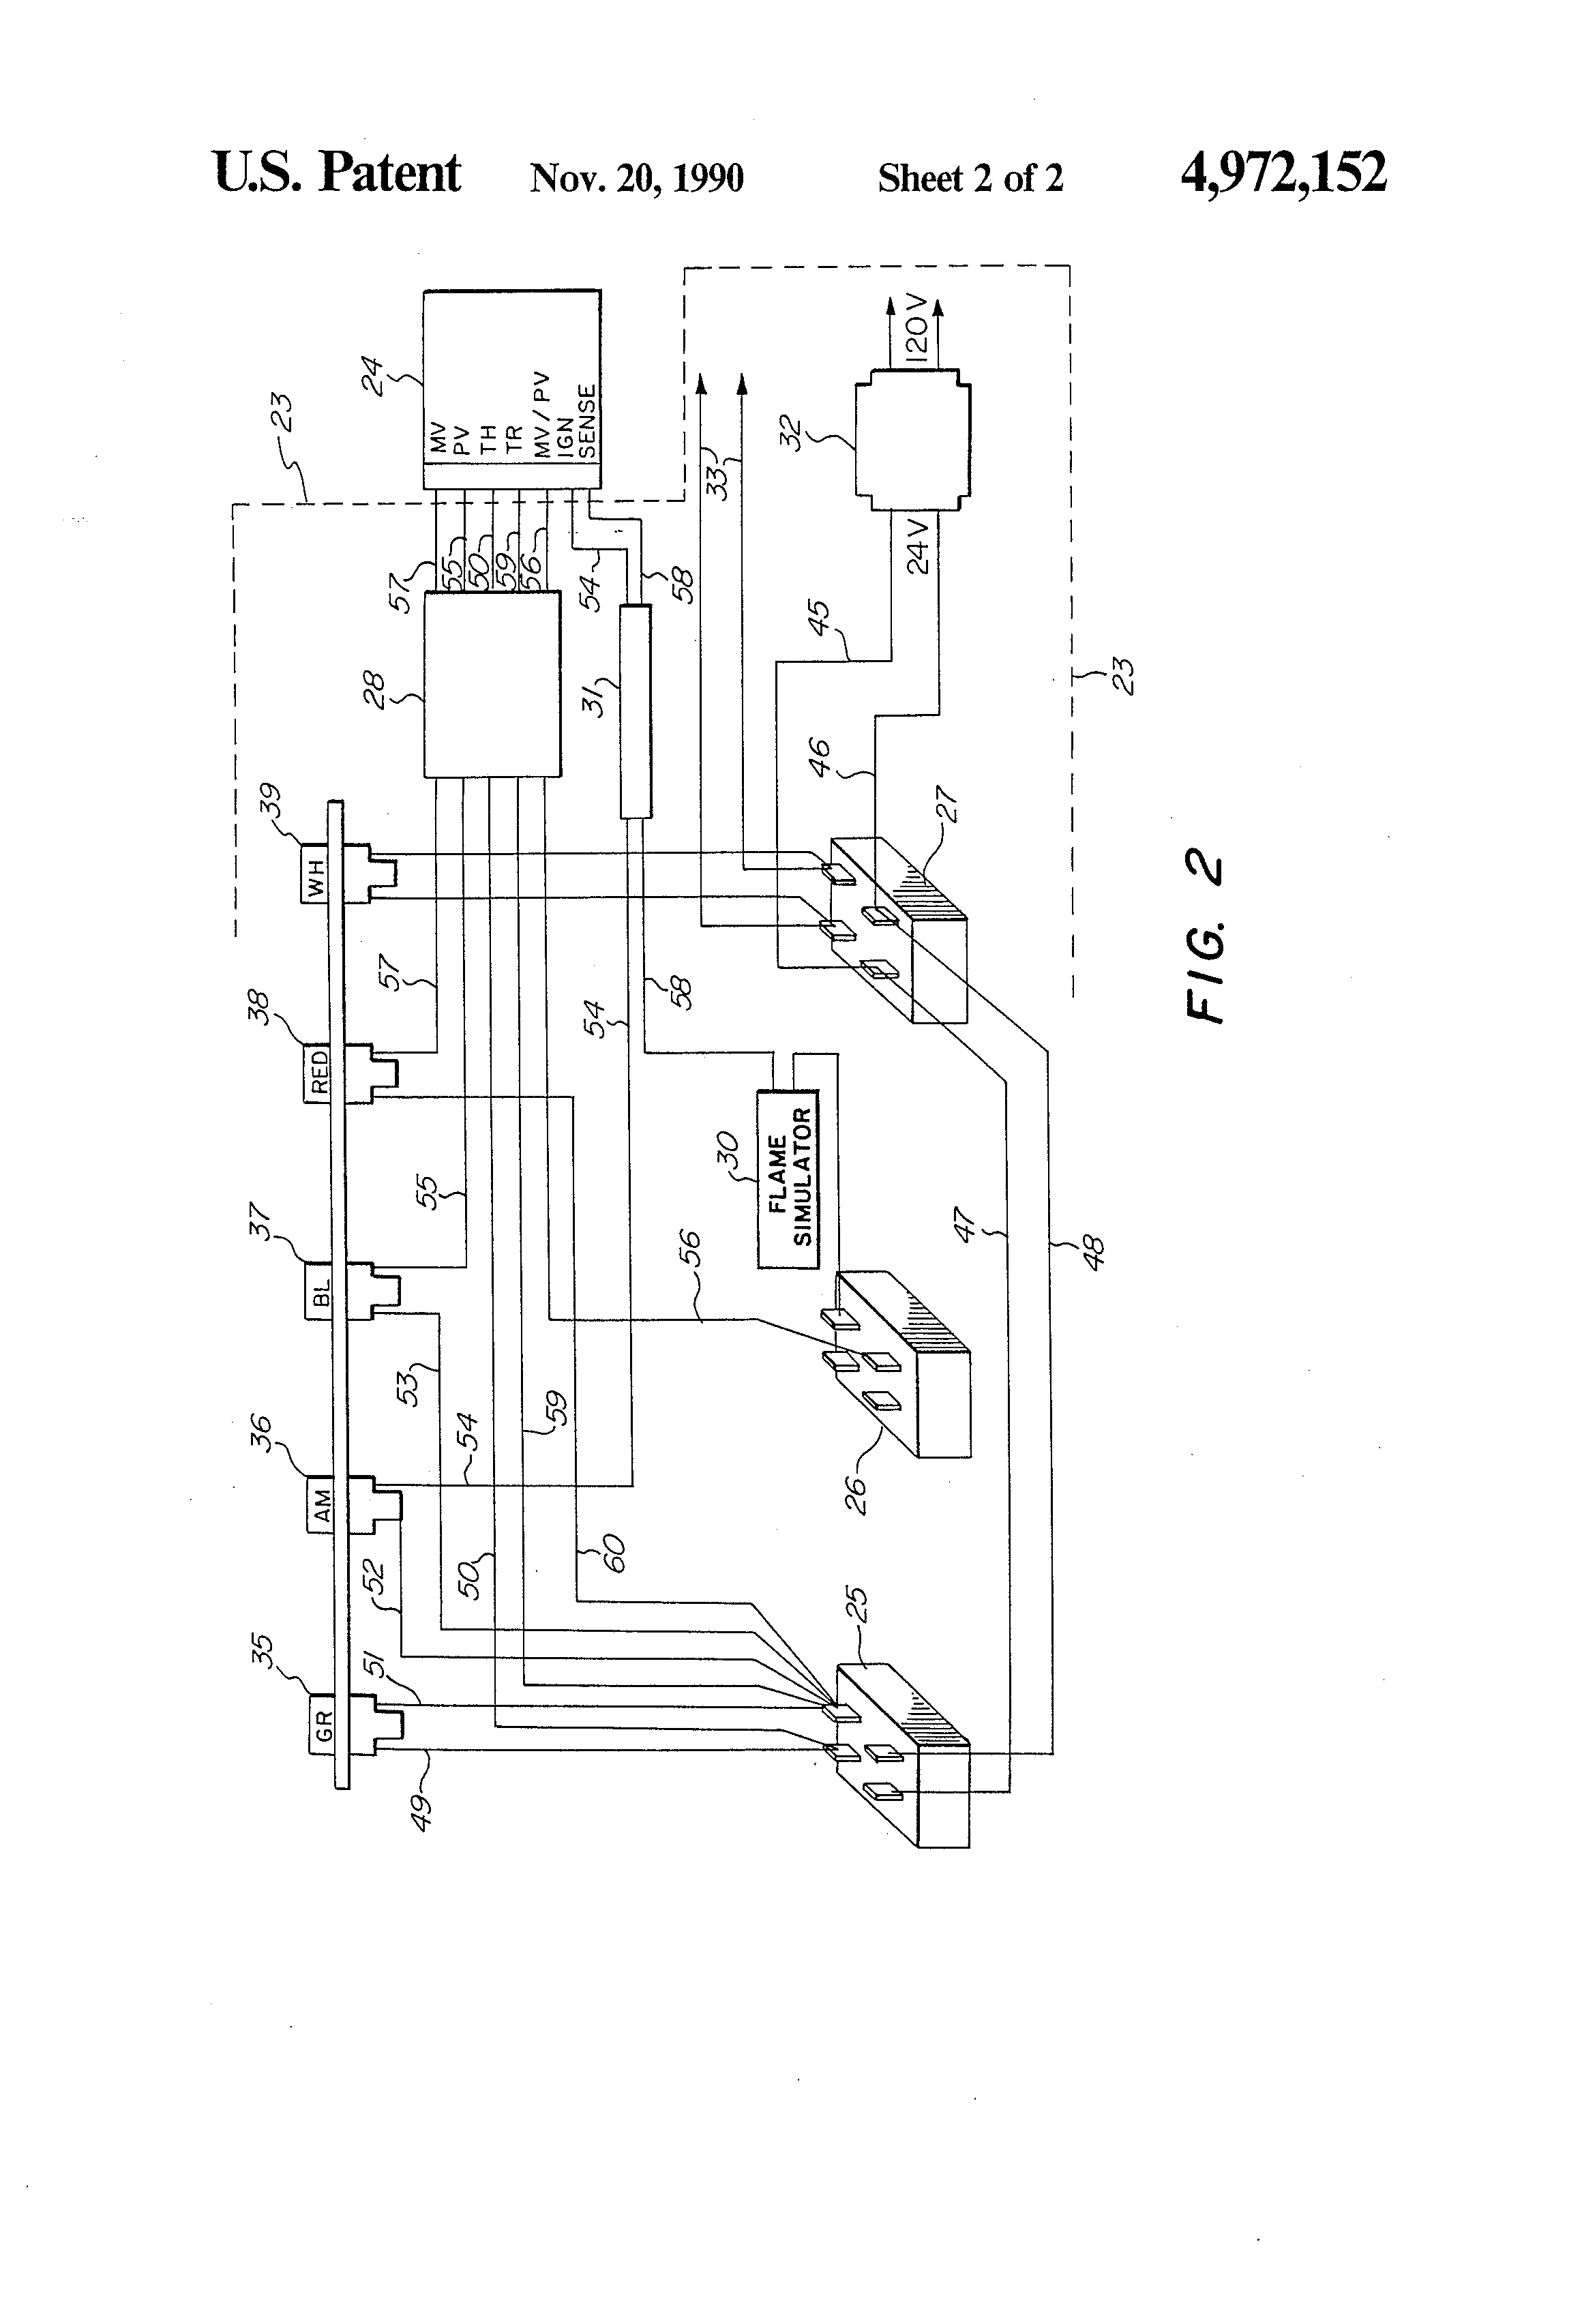 US4972152 2 robertshaw ignition module wiring diagram wiring diagram robert shaw 780 715 u wiring diagram at gsmportal.co